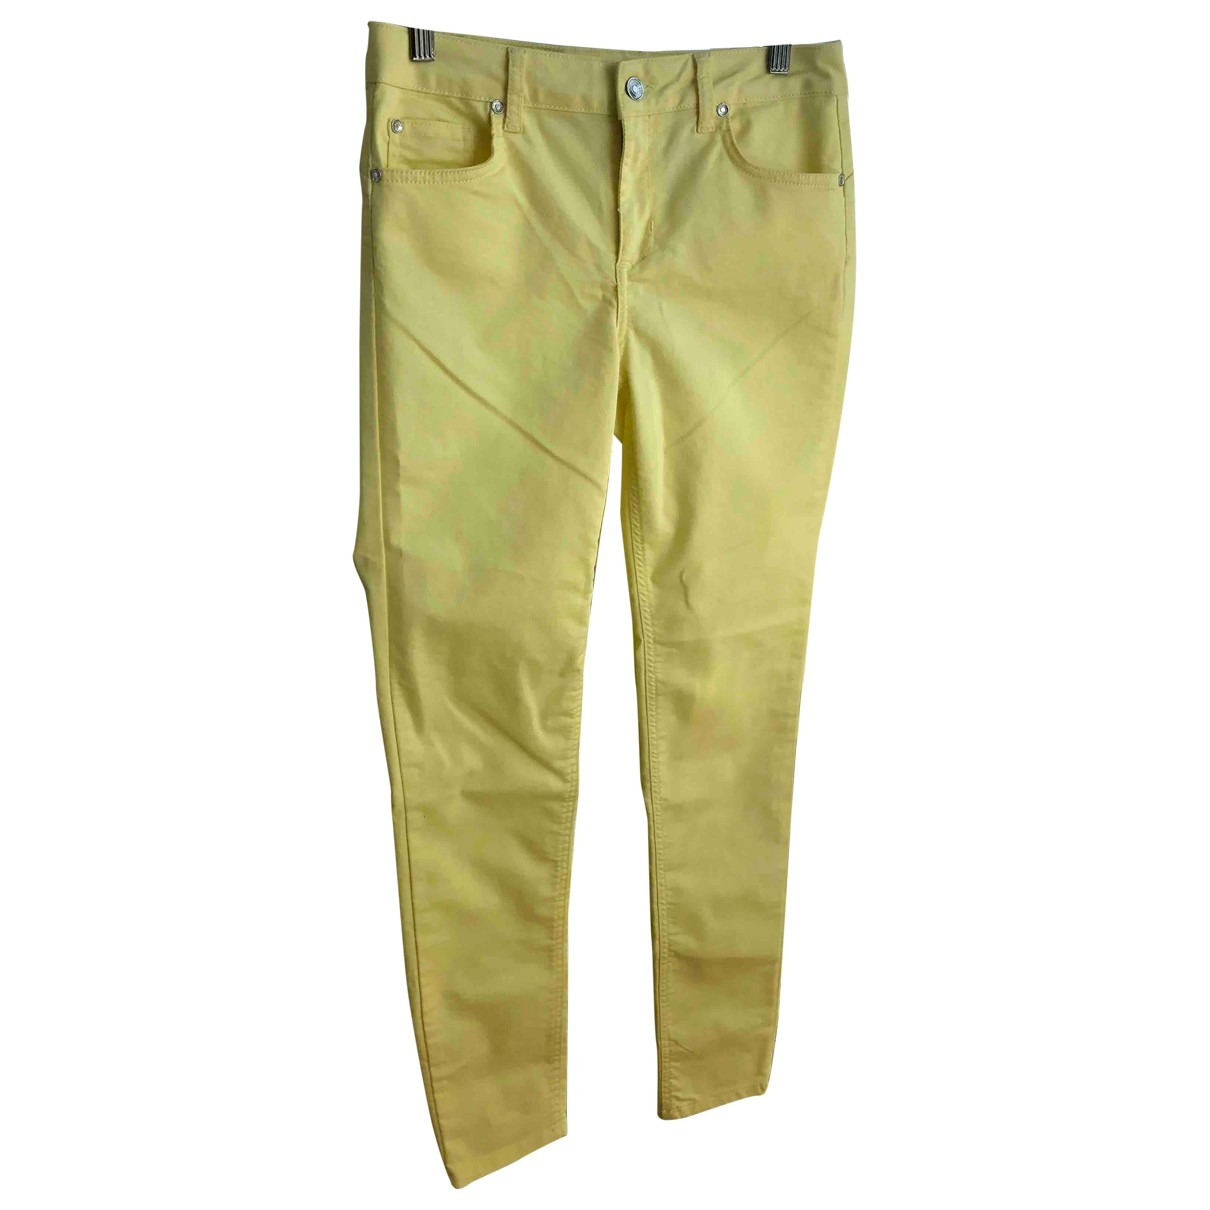 Liu.jo \N Yellow Cotton Jeans for Women 40 FR